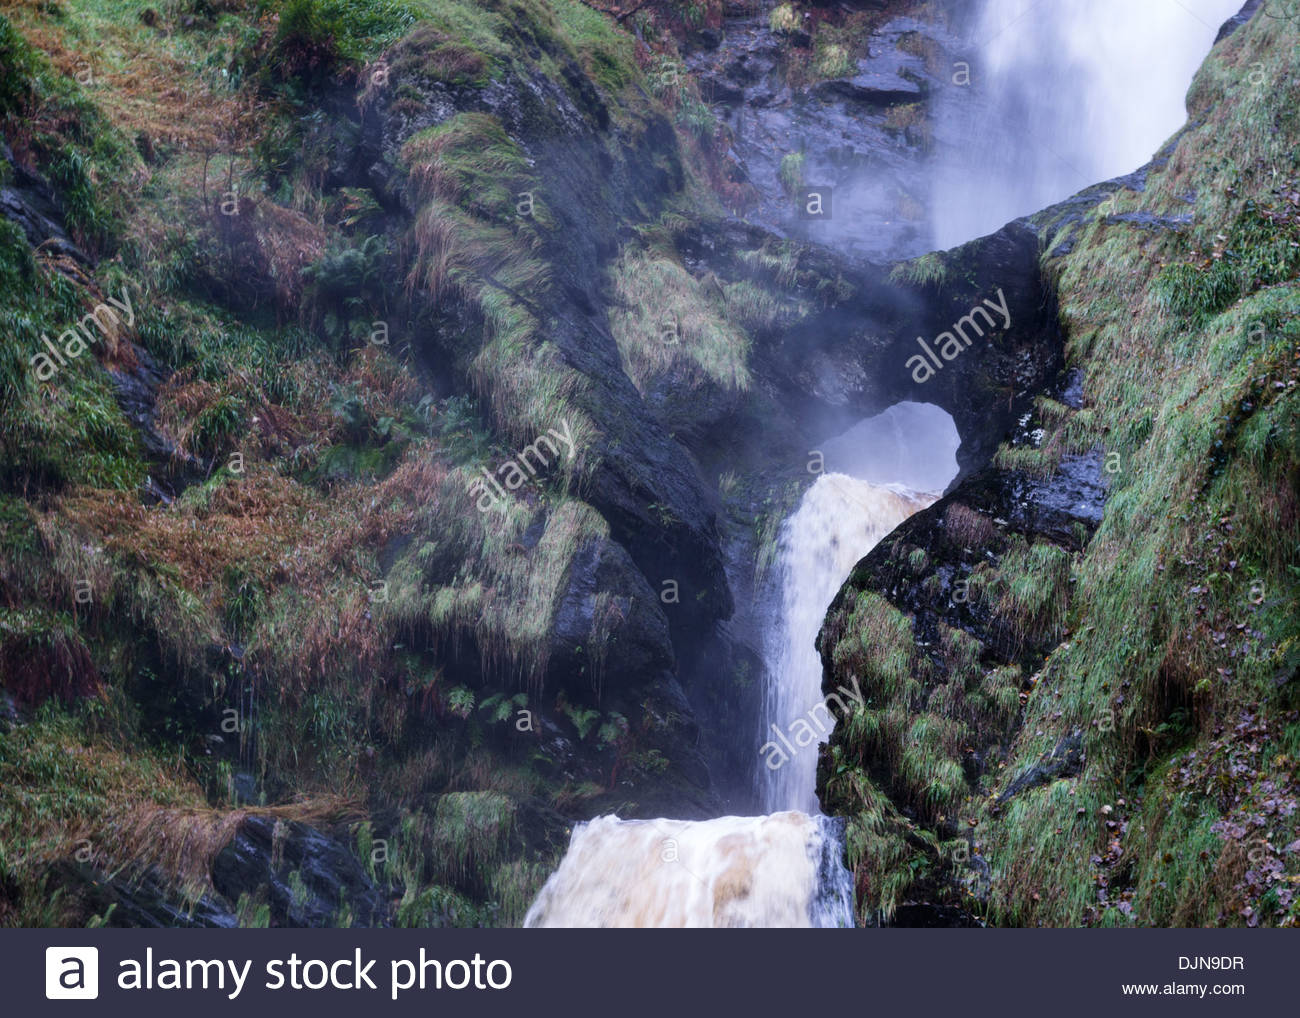 Forces of nature - Stock Image